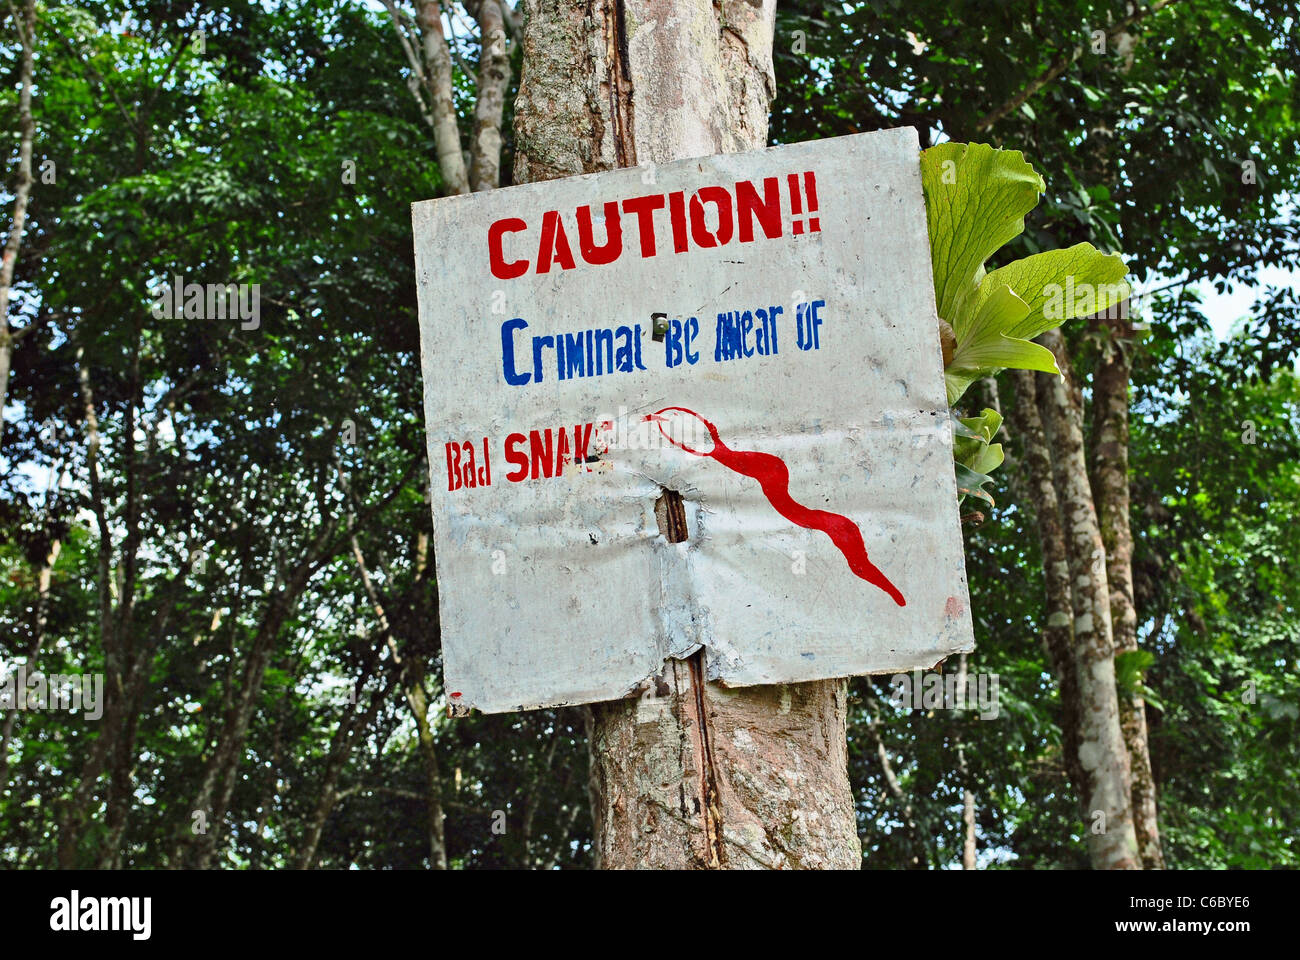 Beware of Snakes sign to deter trespassers on a rubber plantation in Liberia, West Africa - Stock Image